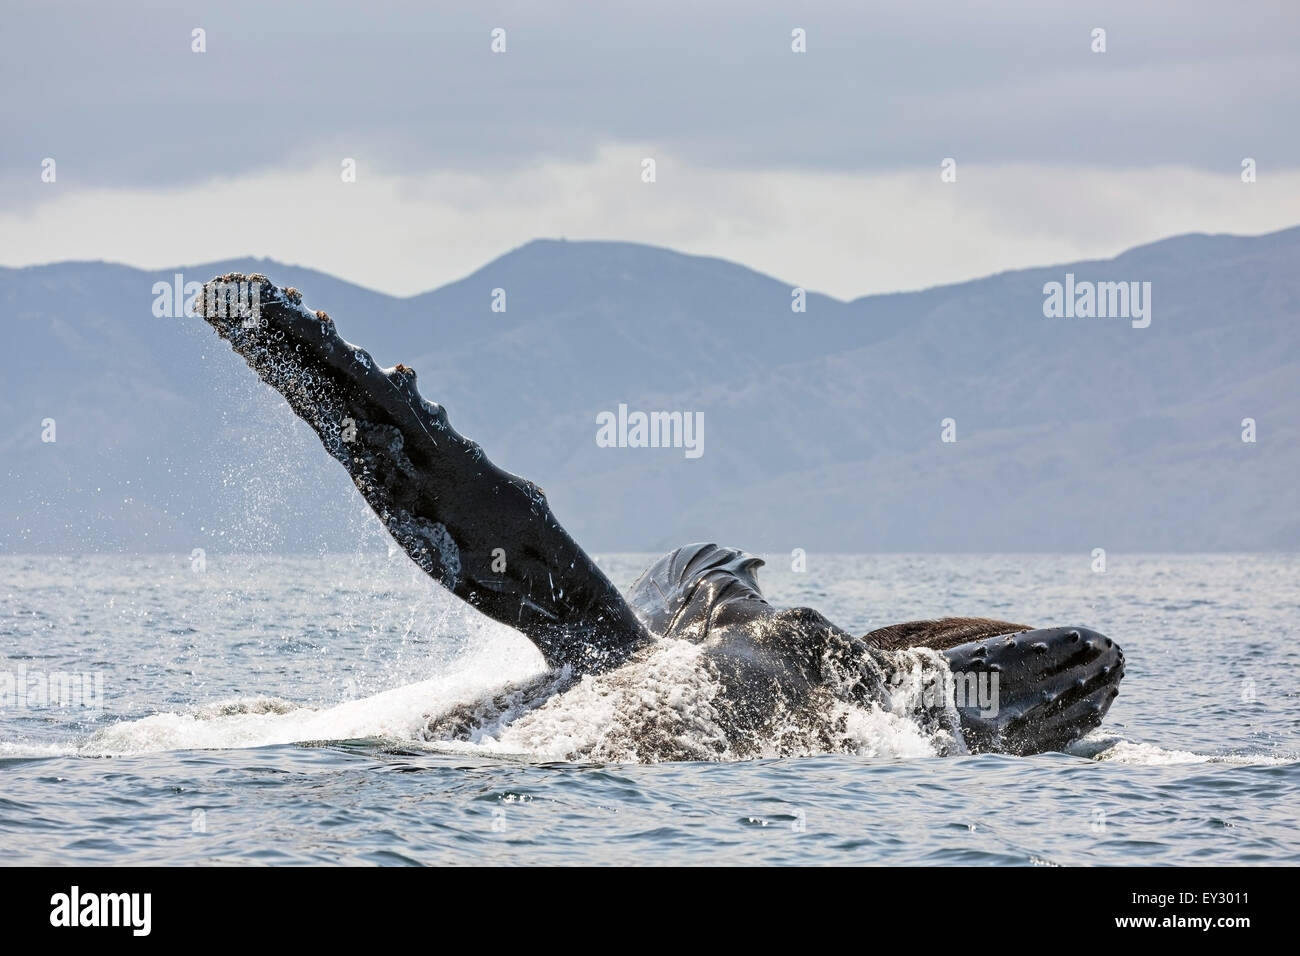 Huge pectoral fin in the air, a Humpback lunge-feeds in the Santa Barbara Channel with Santa Cruz Island in the - Stock Image